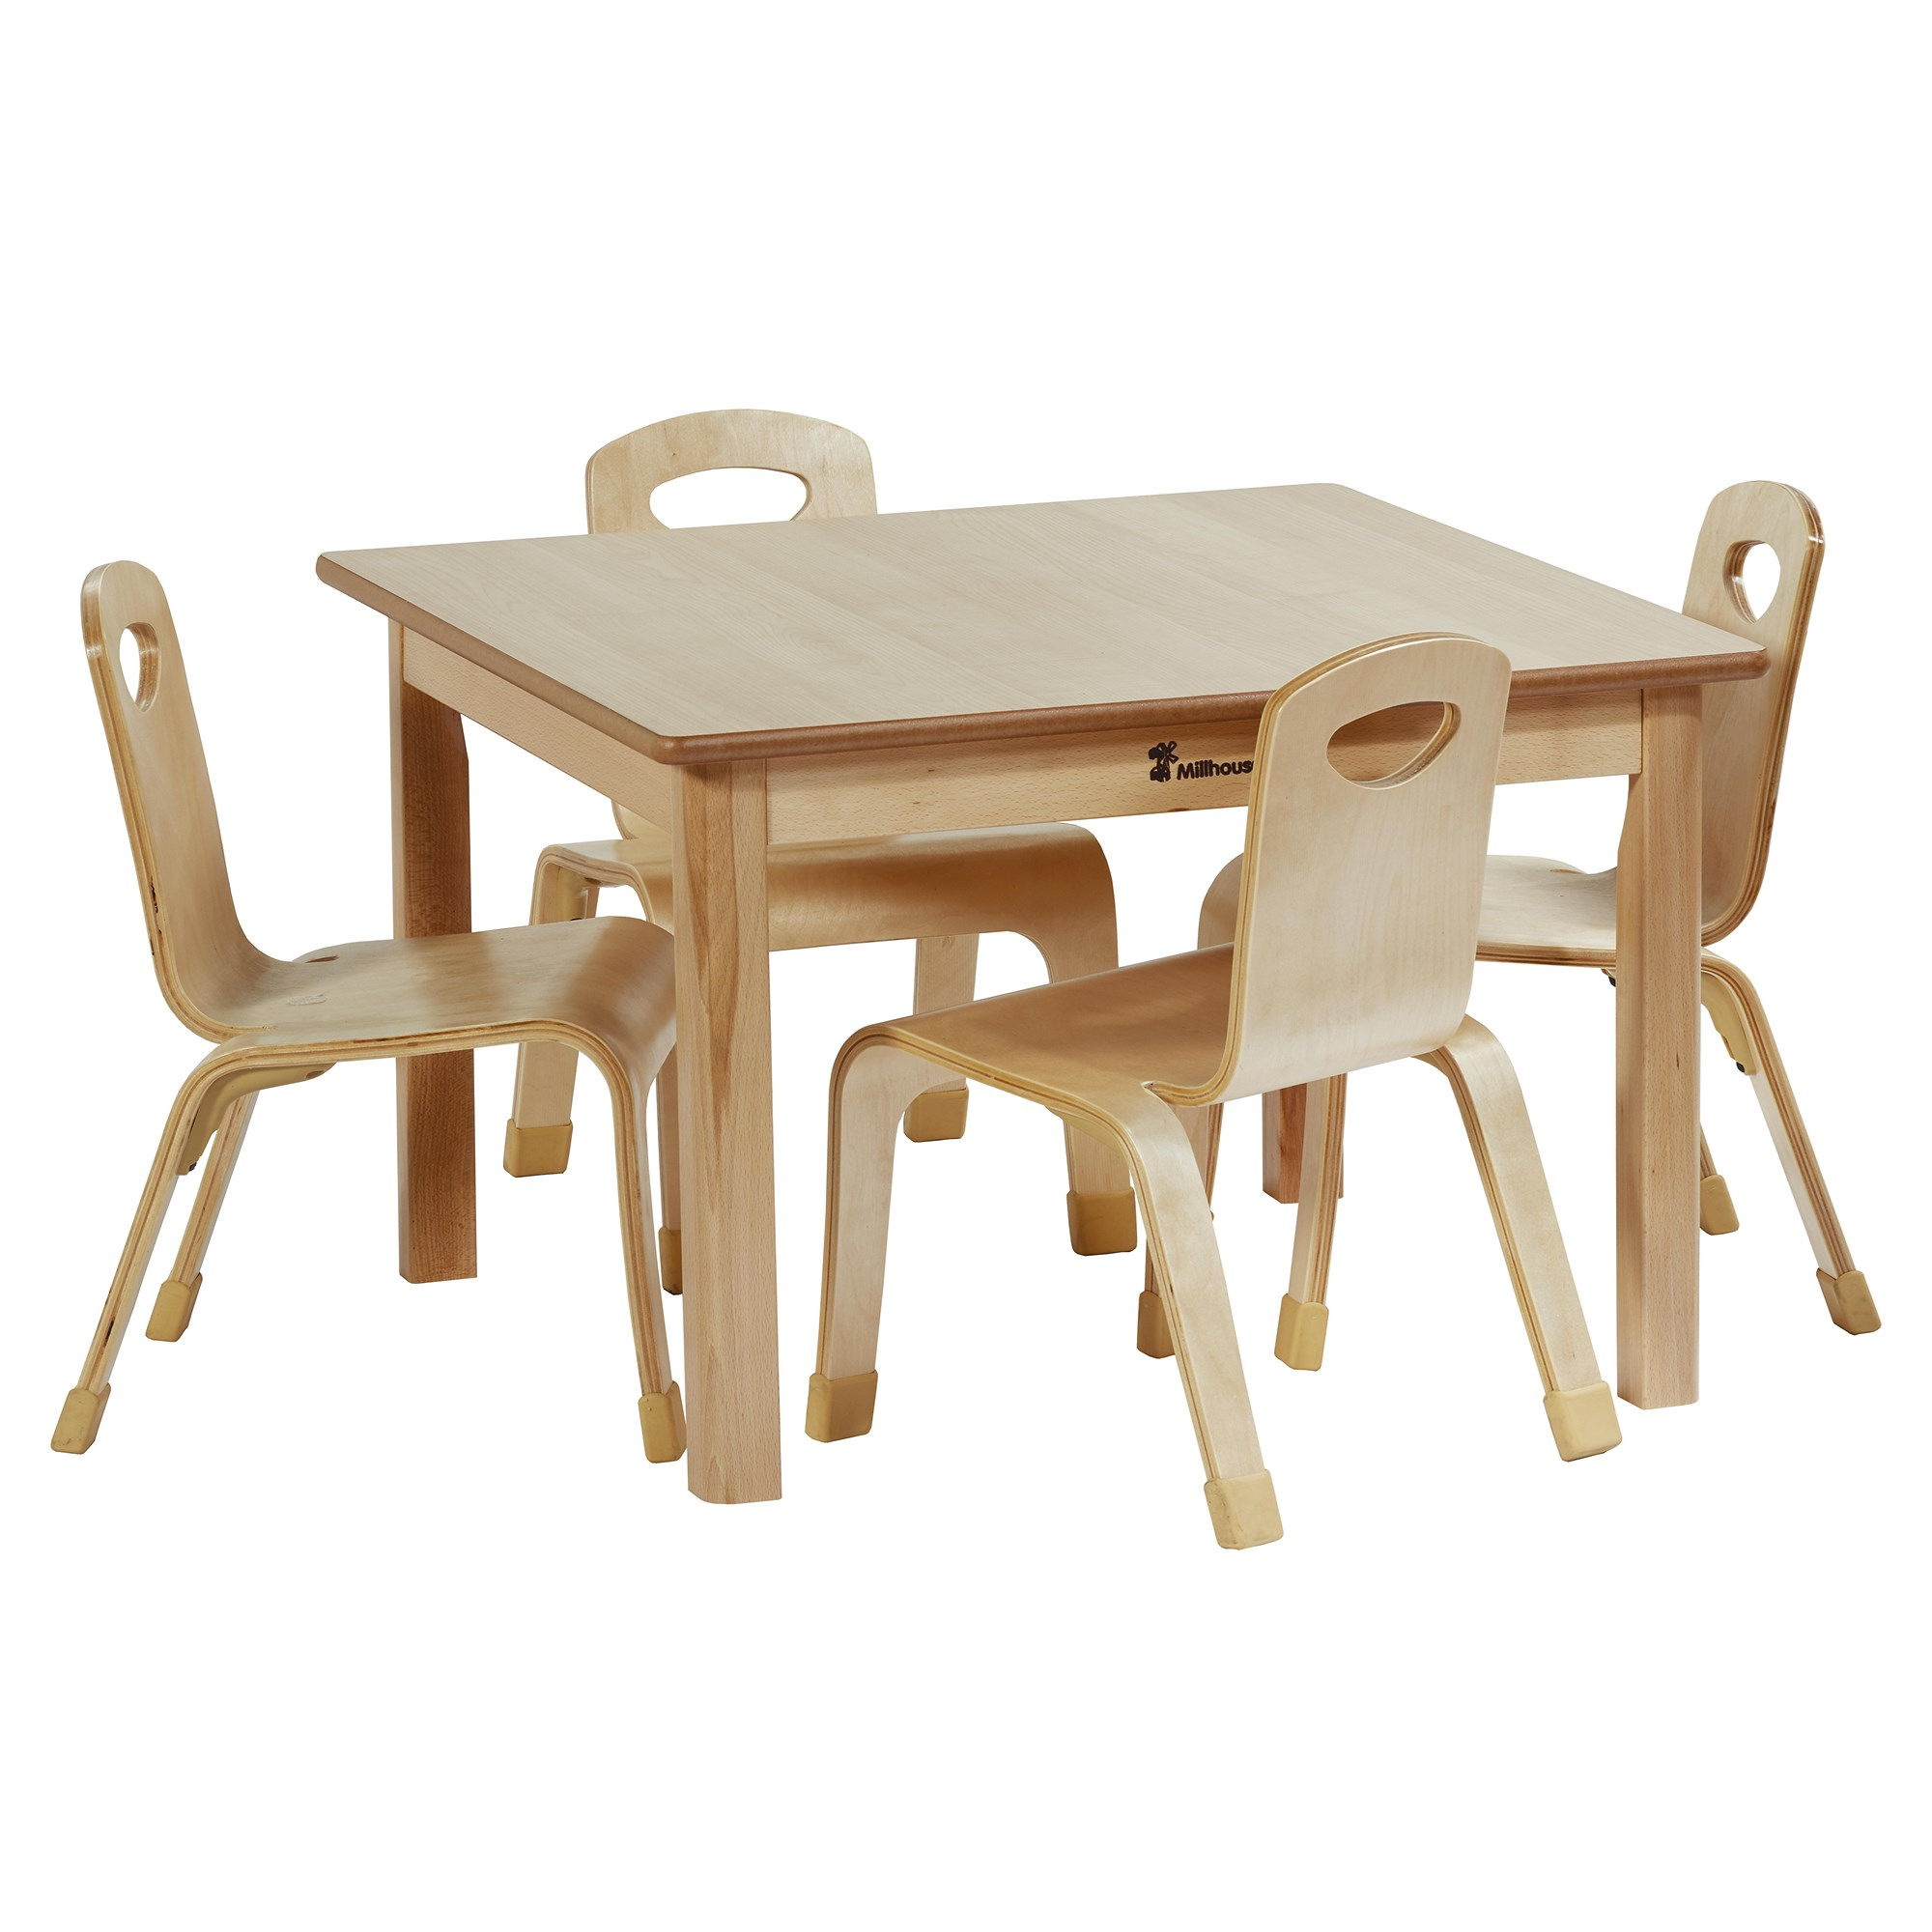 Playscapes Square Table H32cm 4 Chairs H21cm